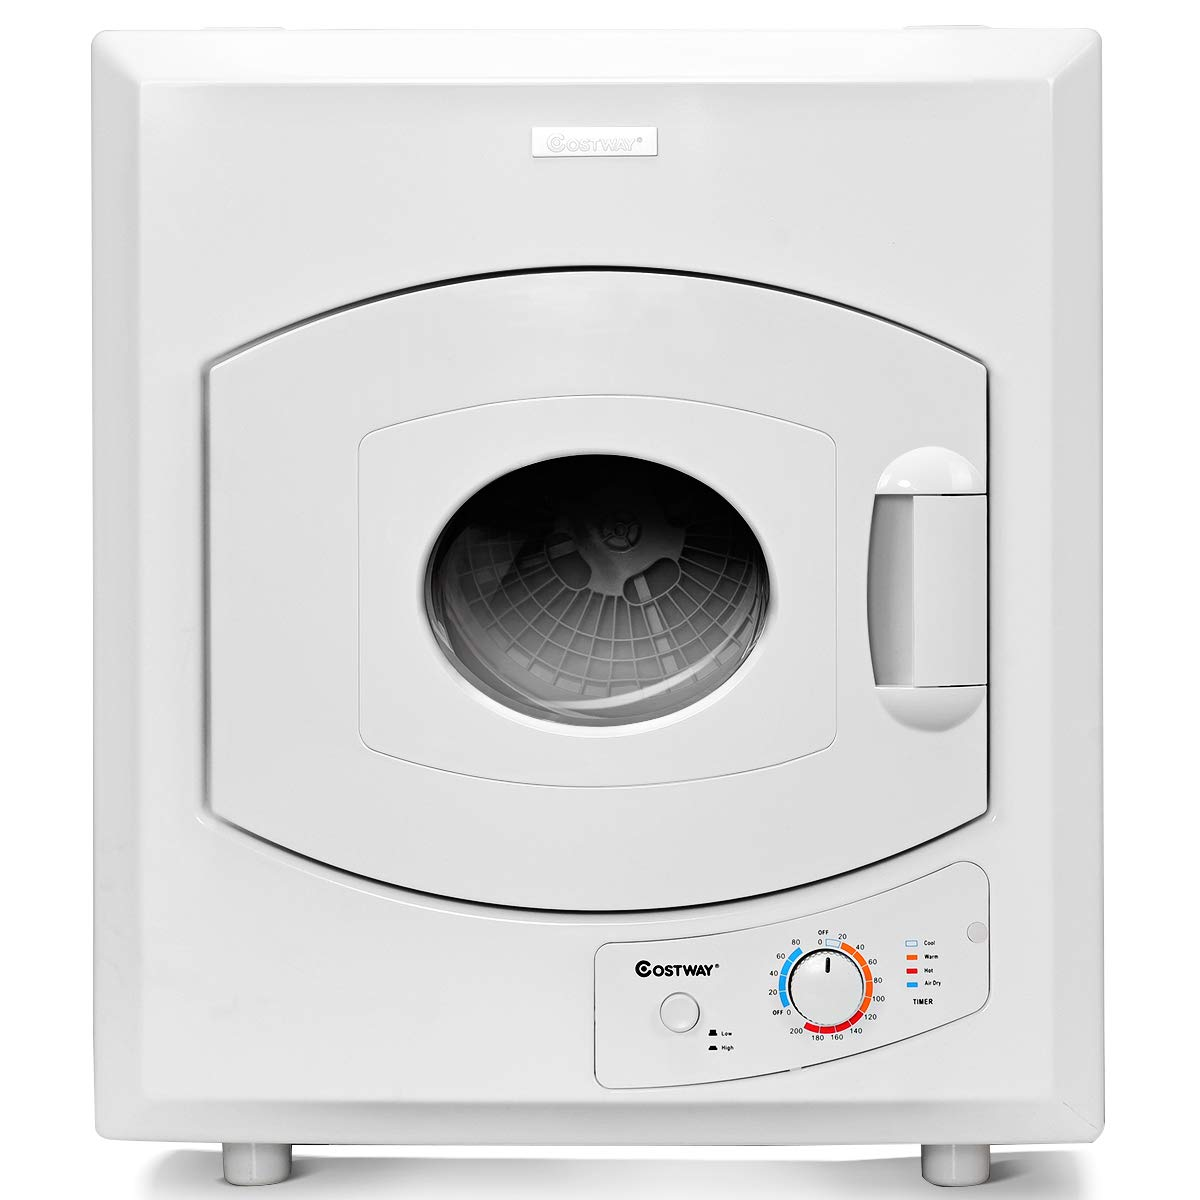 COSTWAY Electric Compact Laundry Dryer, 2.65 Cu.Ft Capacity Portable Tumble Clothes Dryer with Stainless Steel Tub, Control Panel Downside Easy Control for 4 Automatic Drying Mode, White by COSTWAY